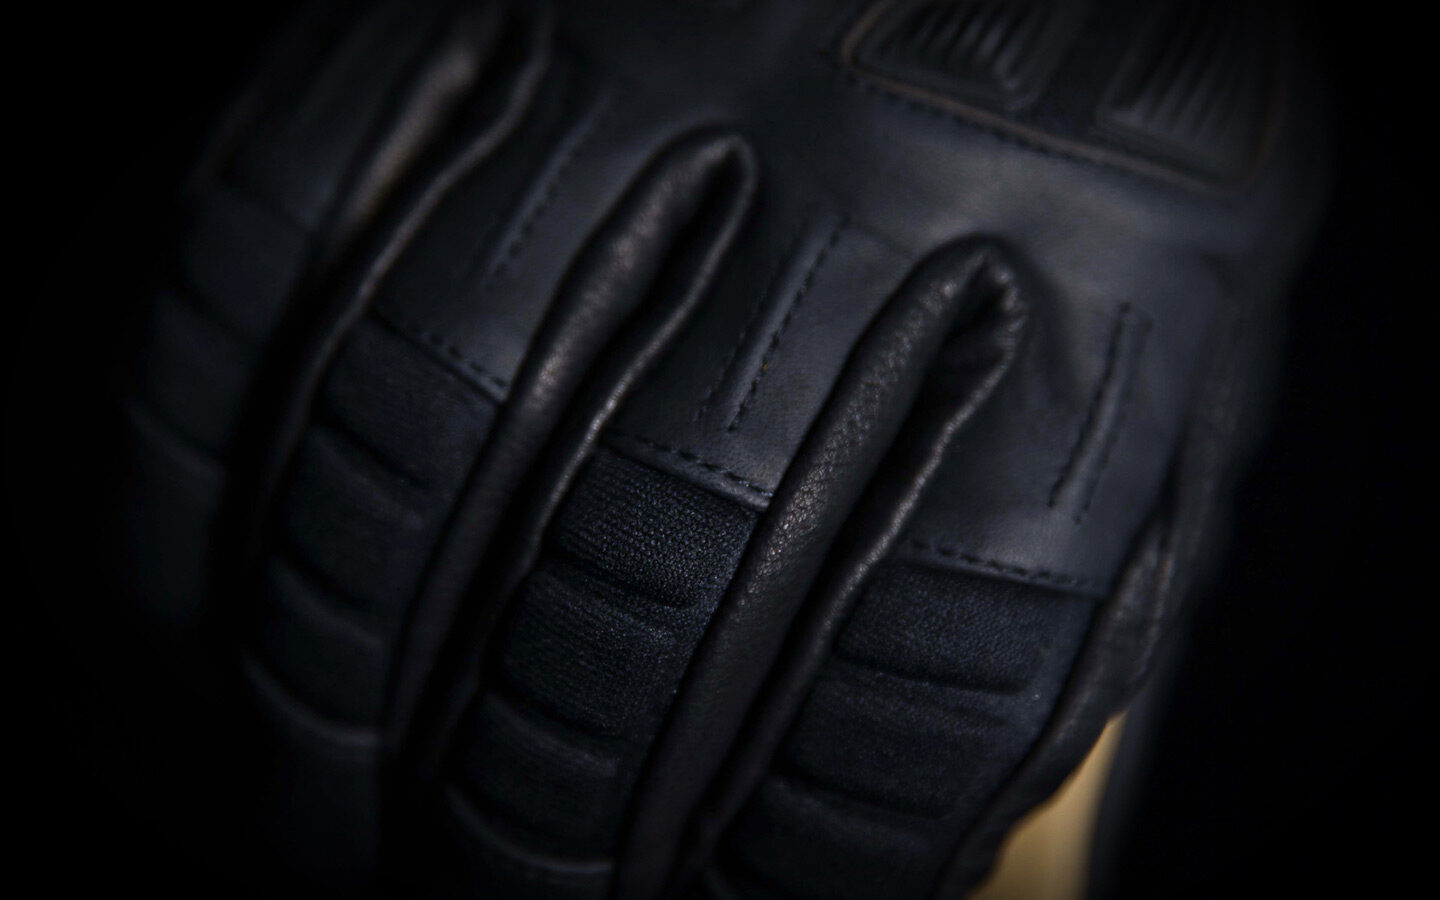 Icon 1000 Axys Gloves detail shot